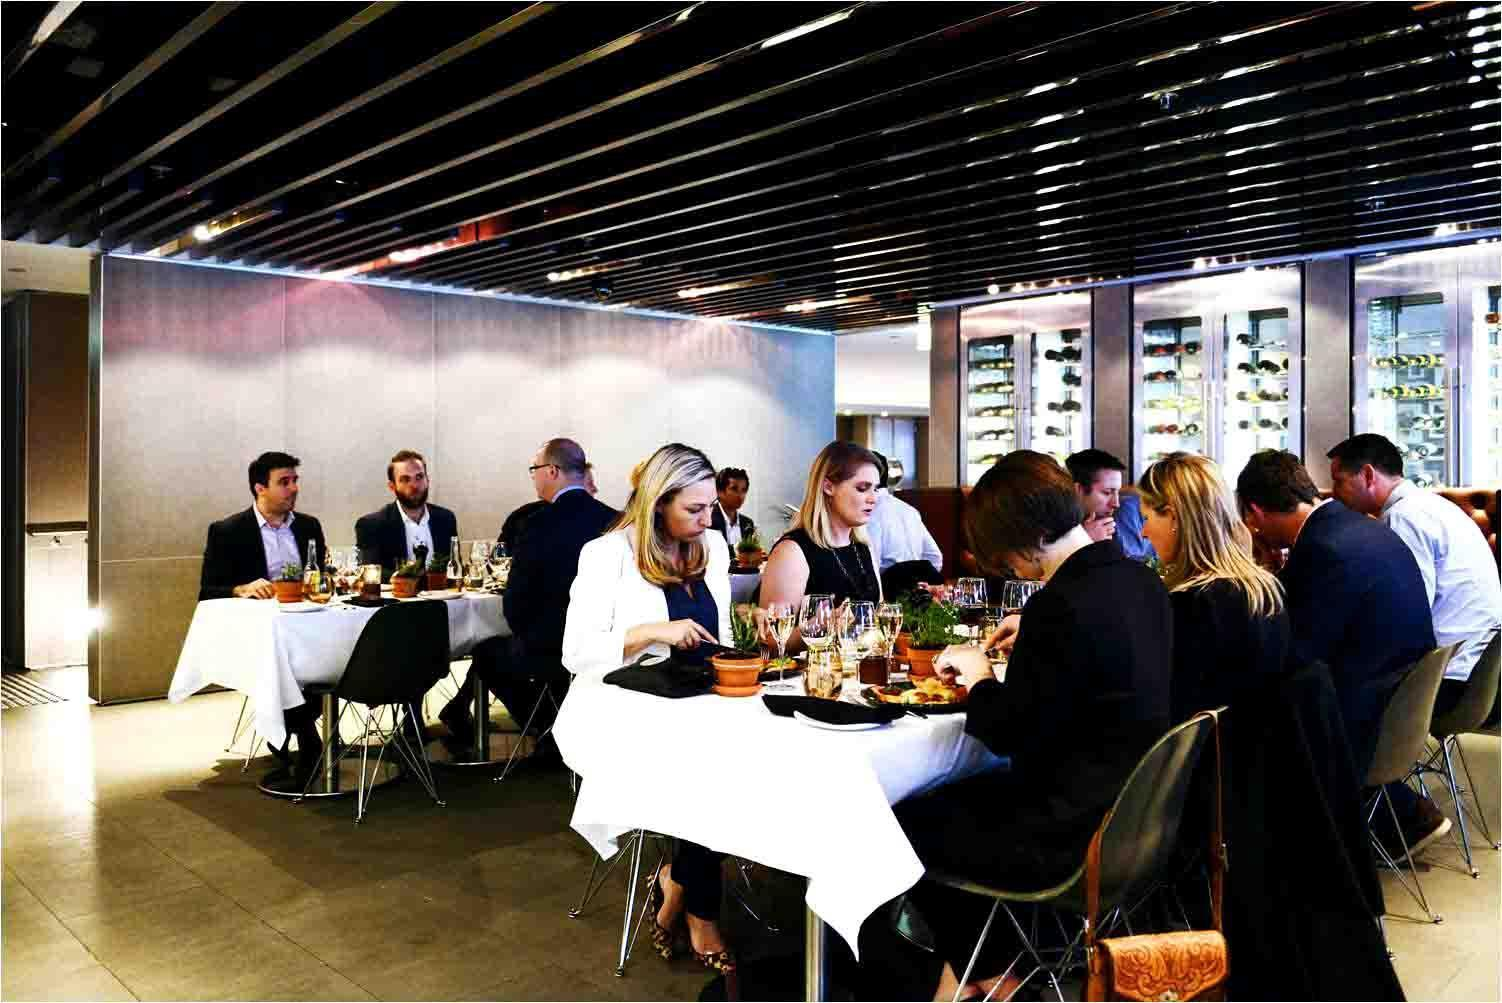 Locanda cbd private dining venue hidden city secrets for Dining room 211 melbourne